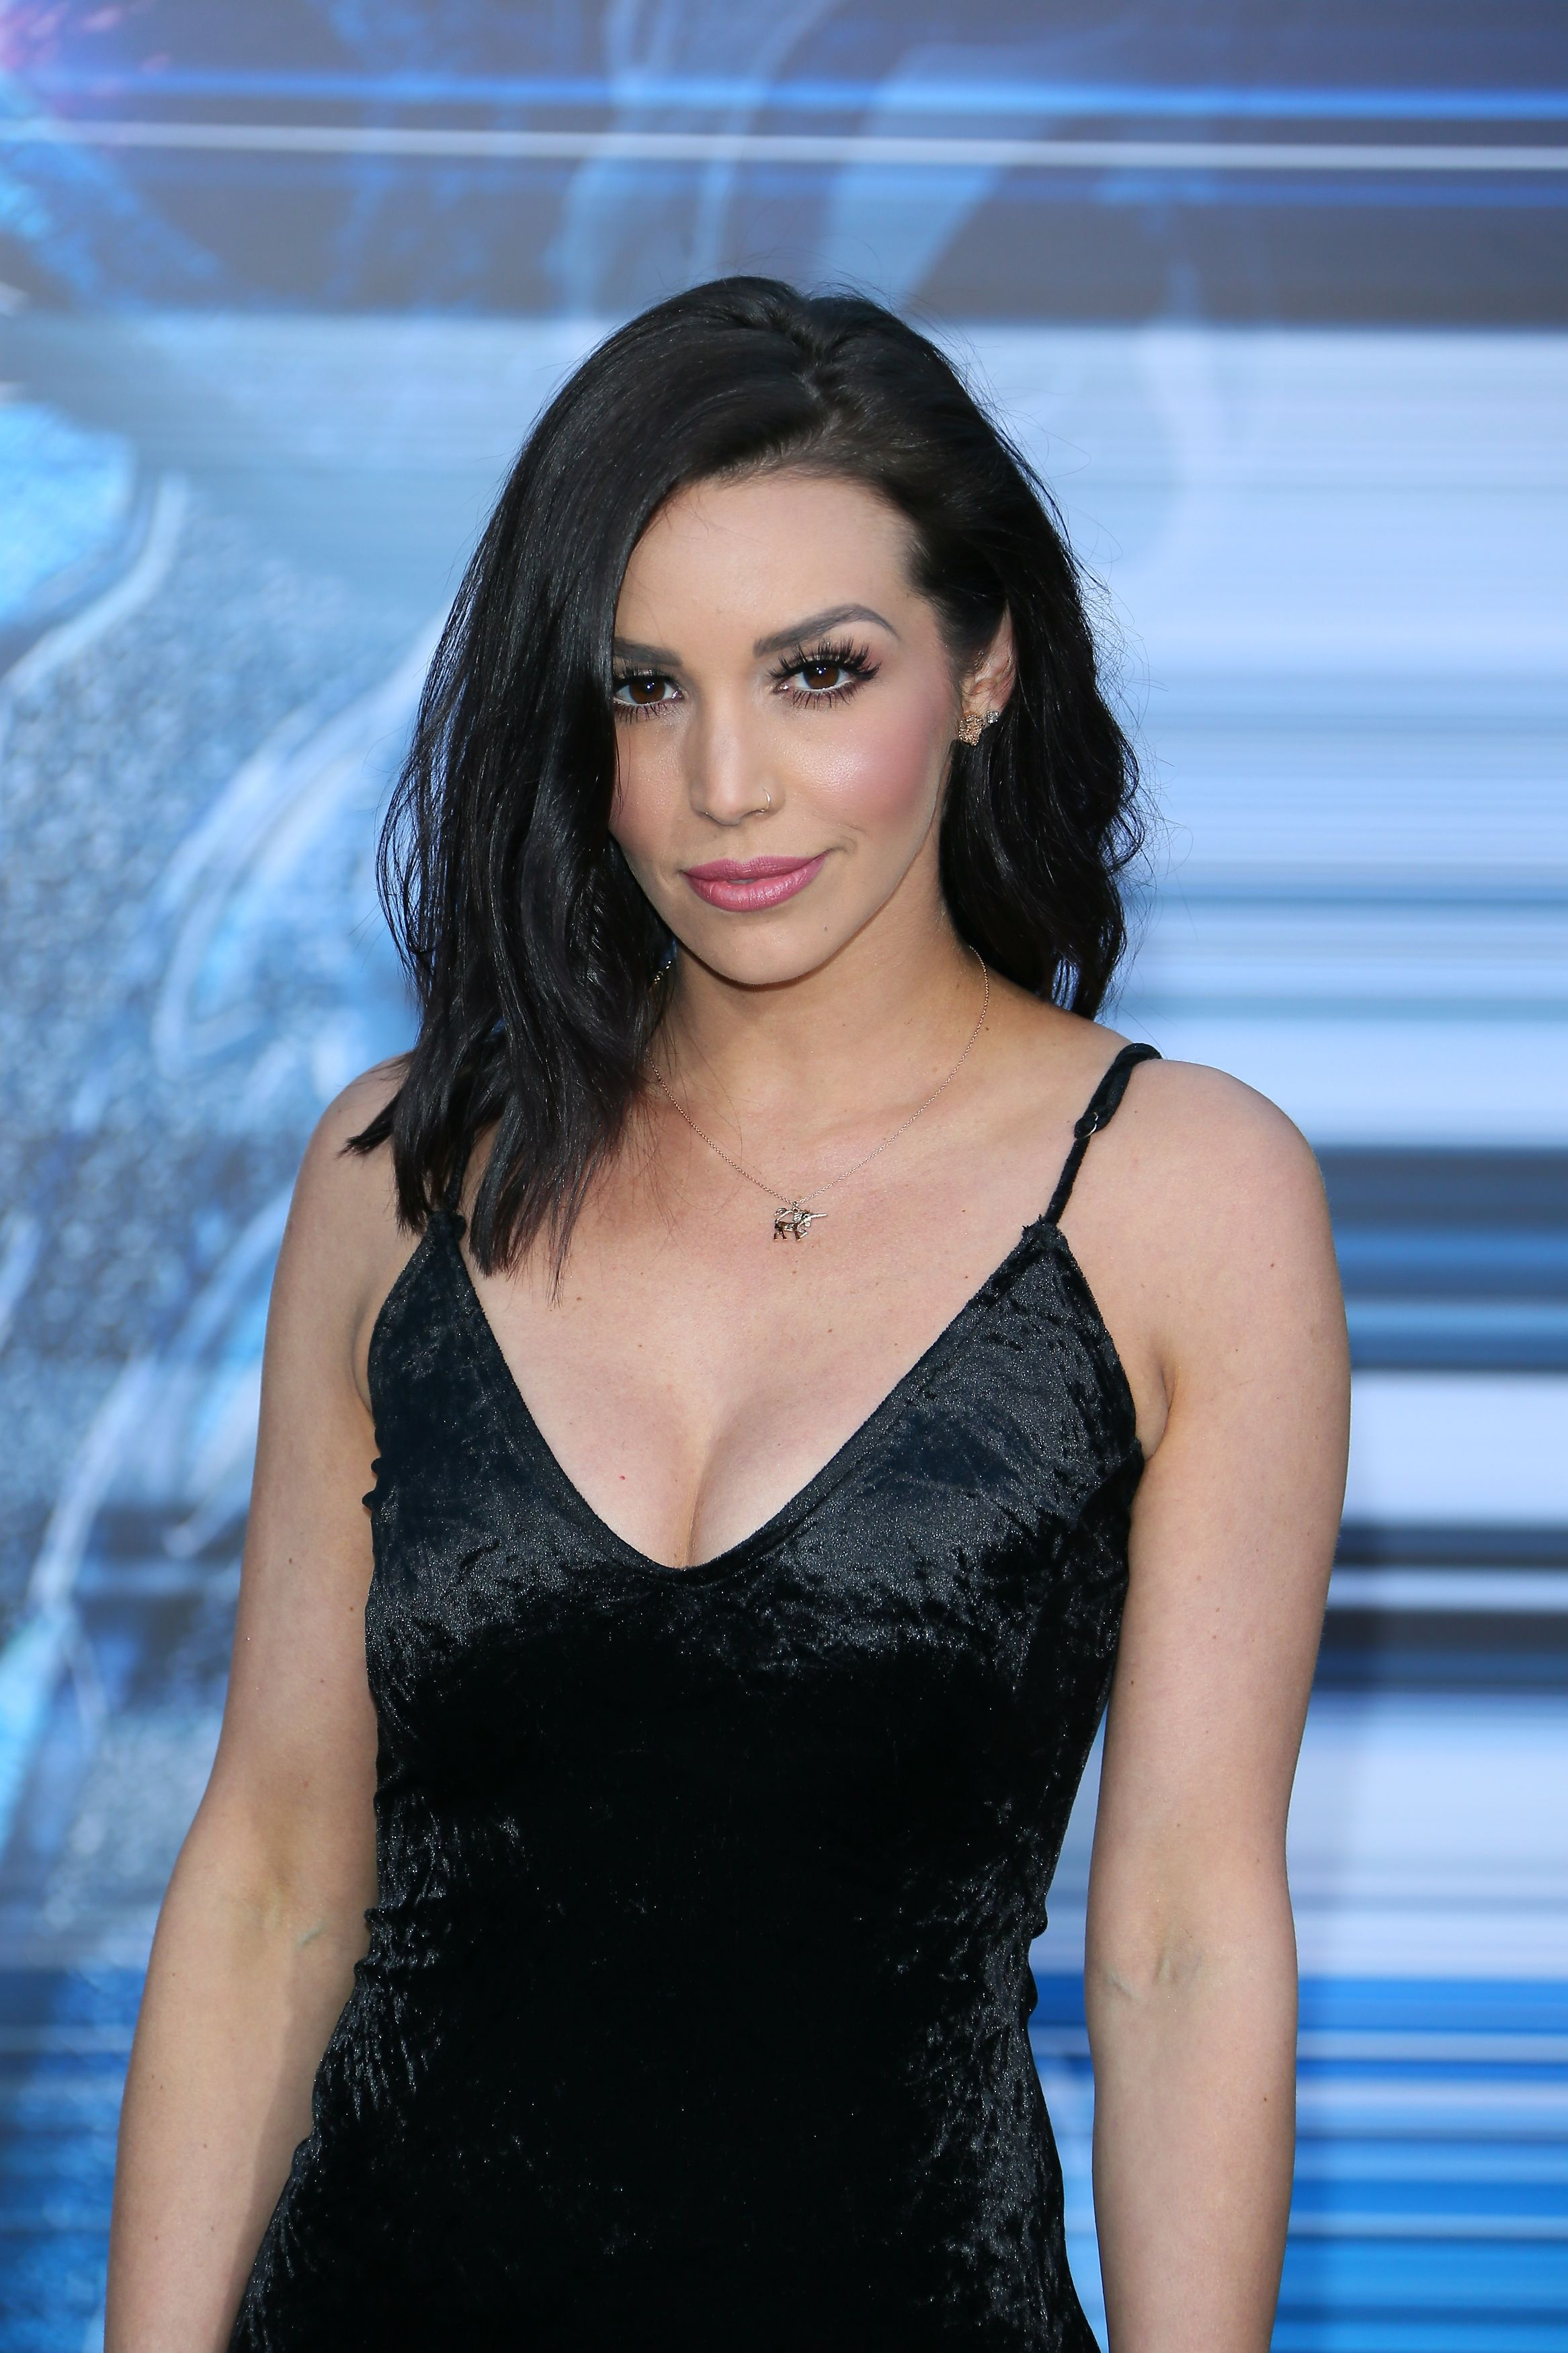 Vanderpump Rules Scheana Shay Says She Lost 15 Pounds Carb Cycling